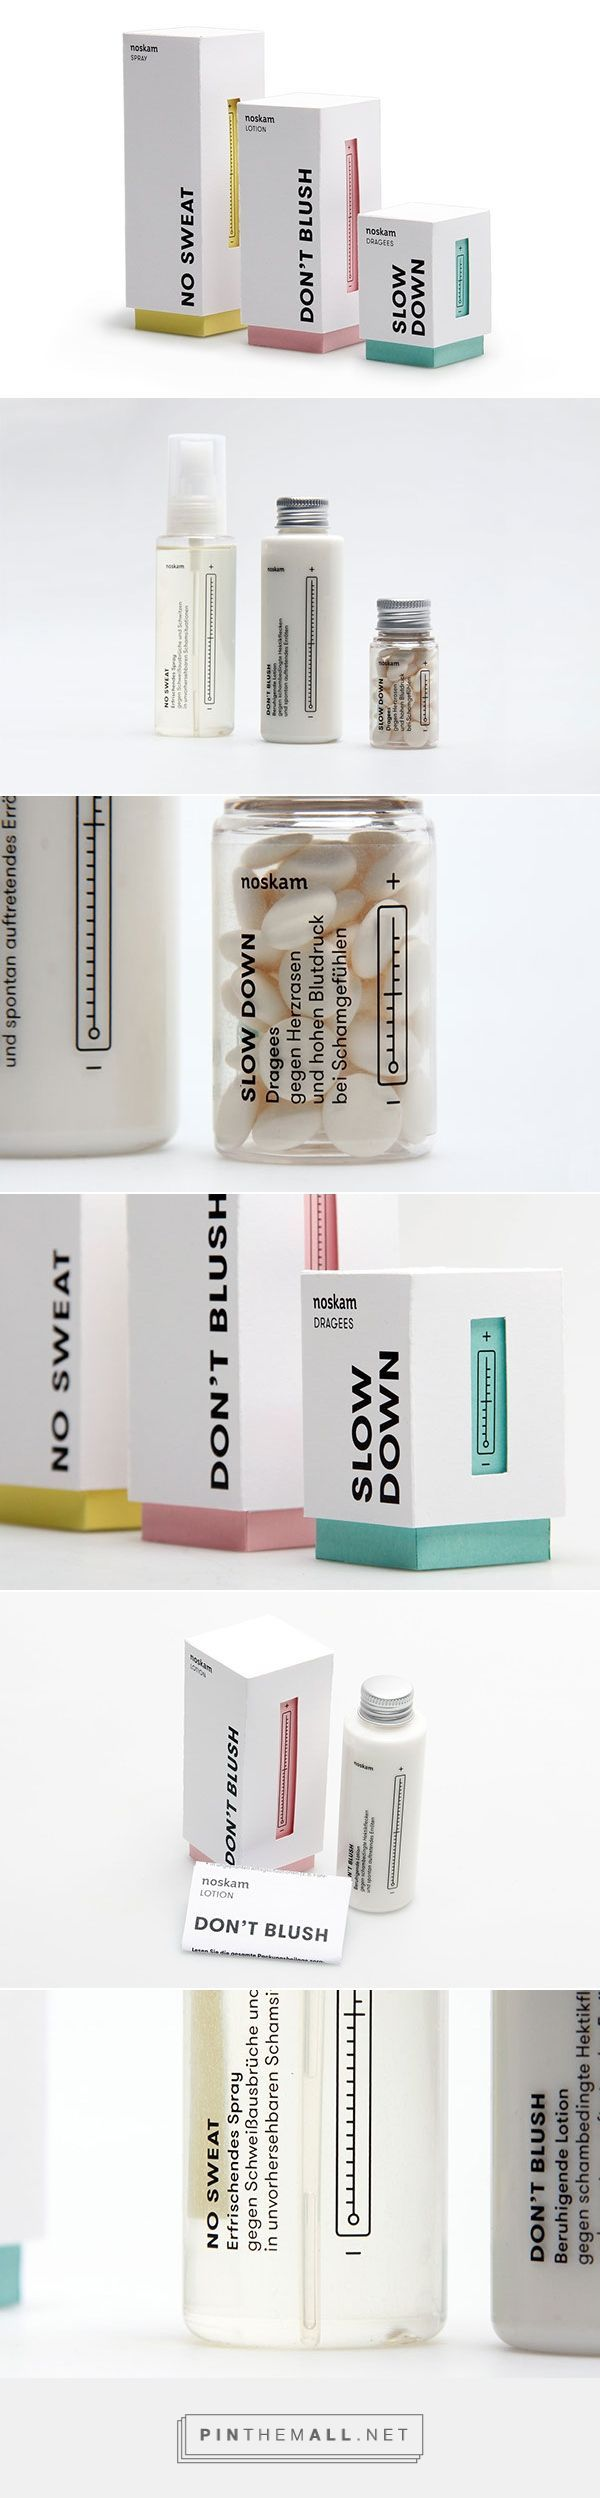 Noskam on Behance by Muskat Berlin, Germany curated by Packaging Diva PD. Interesting fictional packaging, fighting the symptoms of »shame«, which was the topic of typography class at TH Nürnberg.(Soap Bottle Design)